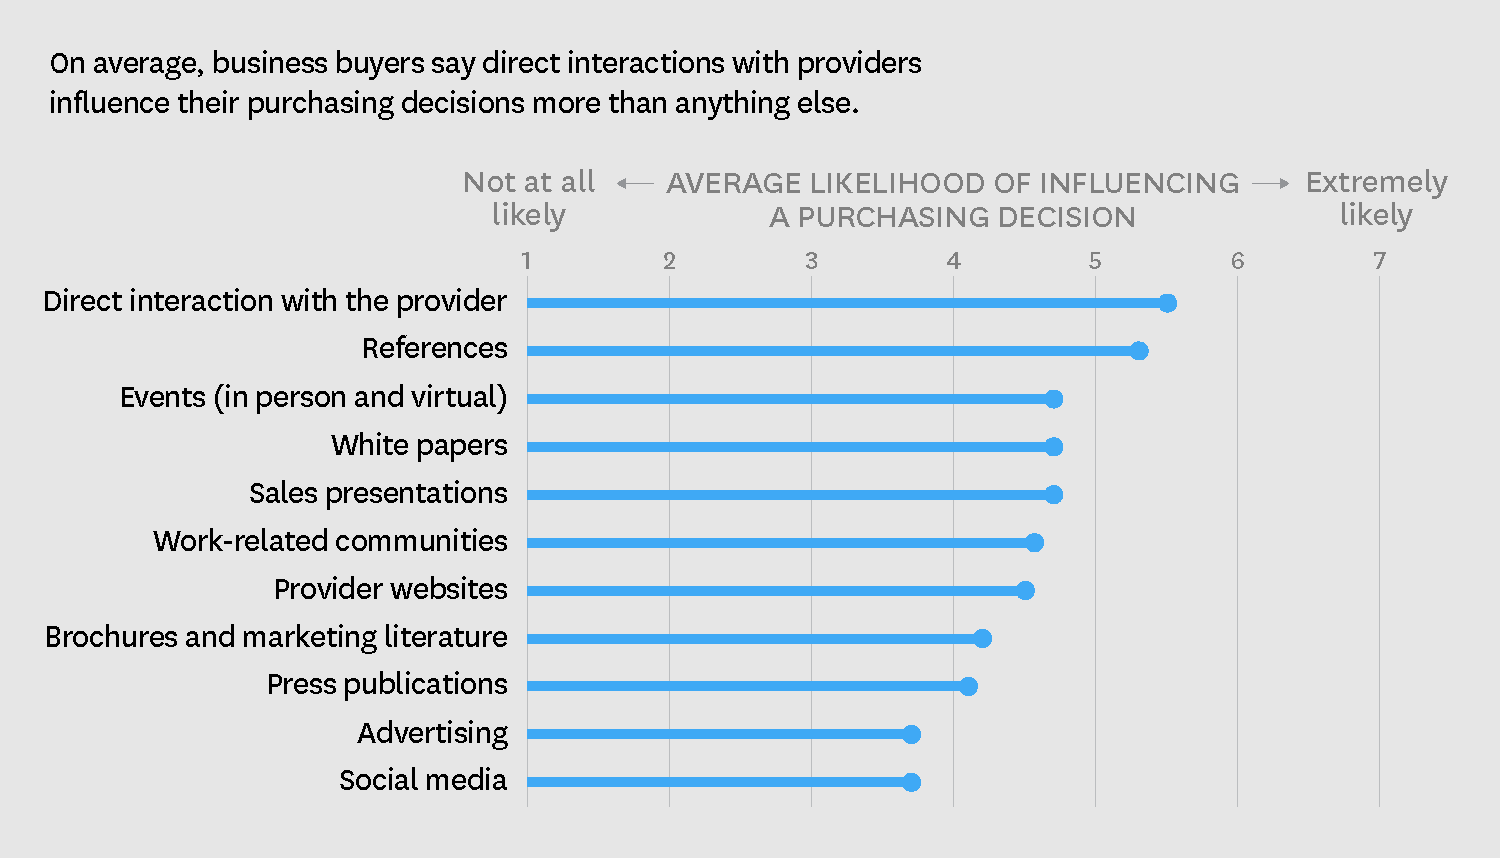 The Most Influential B2B Marketing Activities